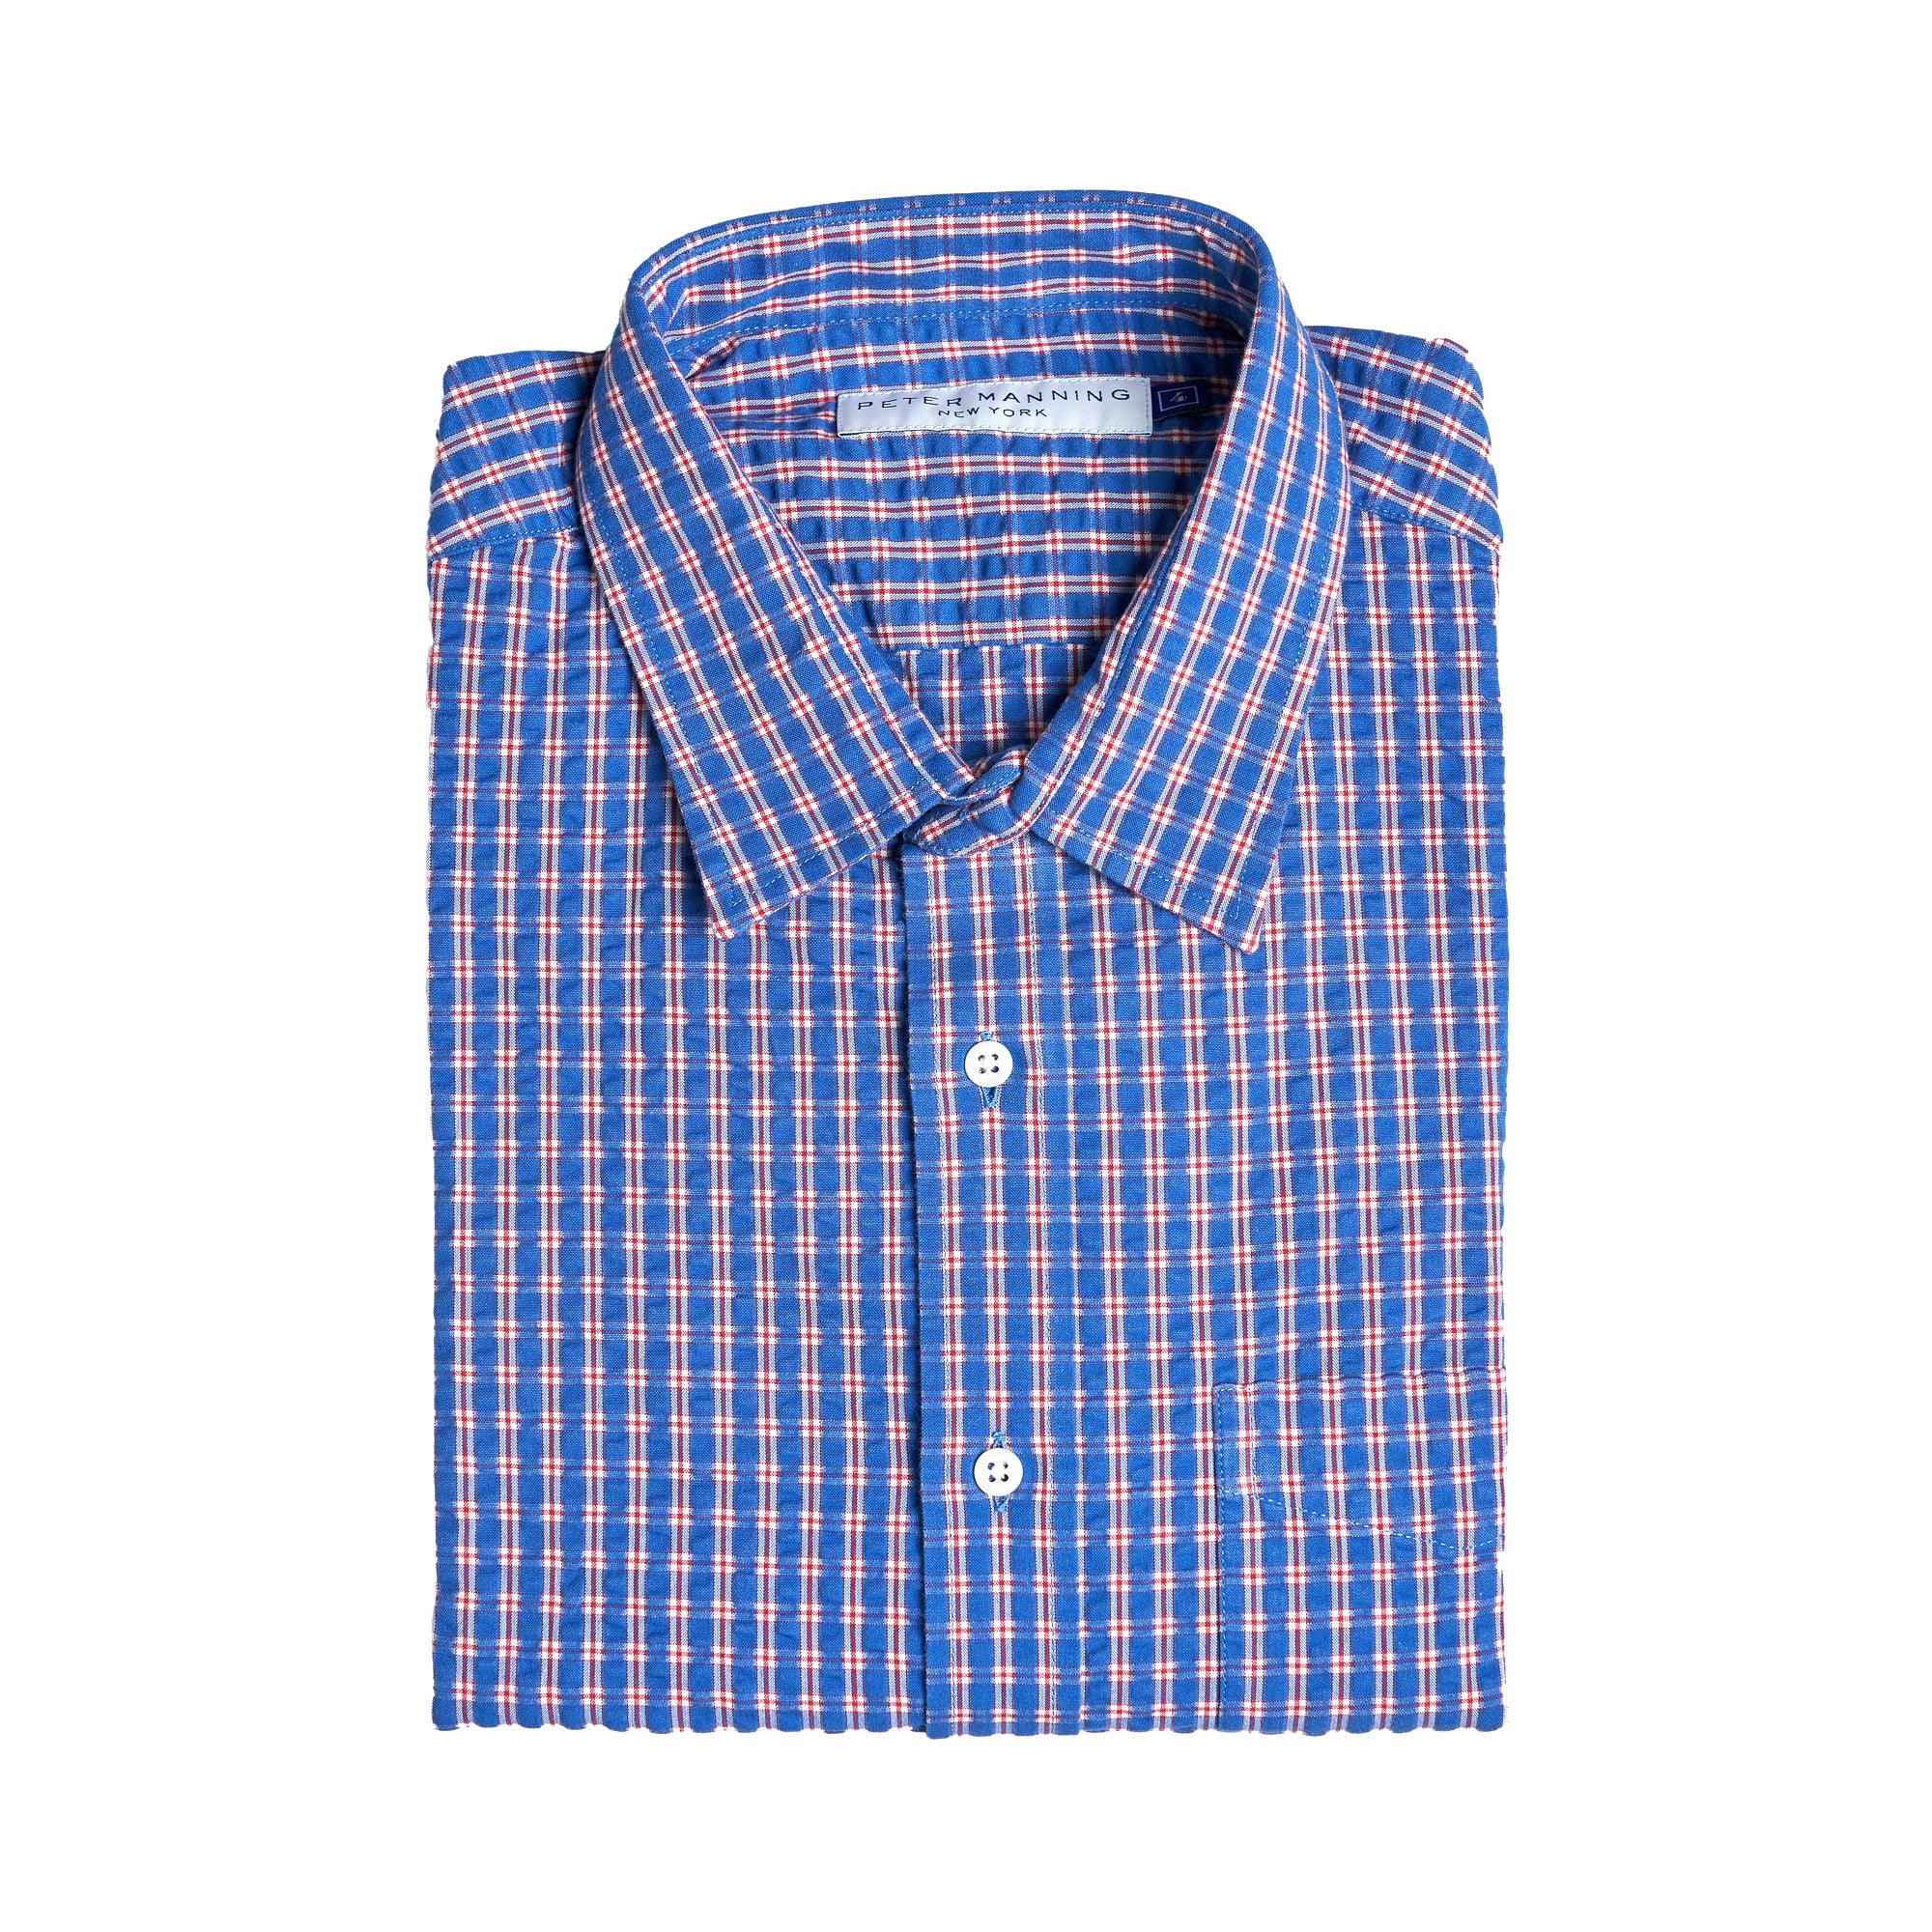 Everyday Shirts Standard Fit - Navy Red Check Seersucker